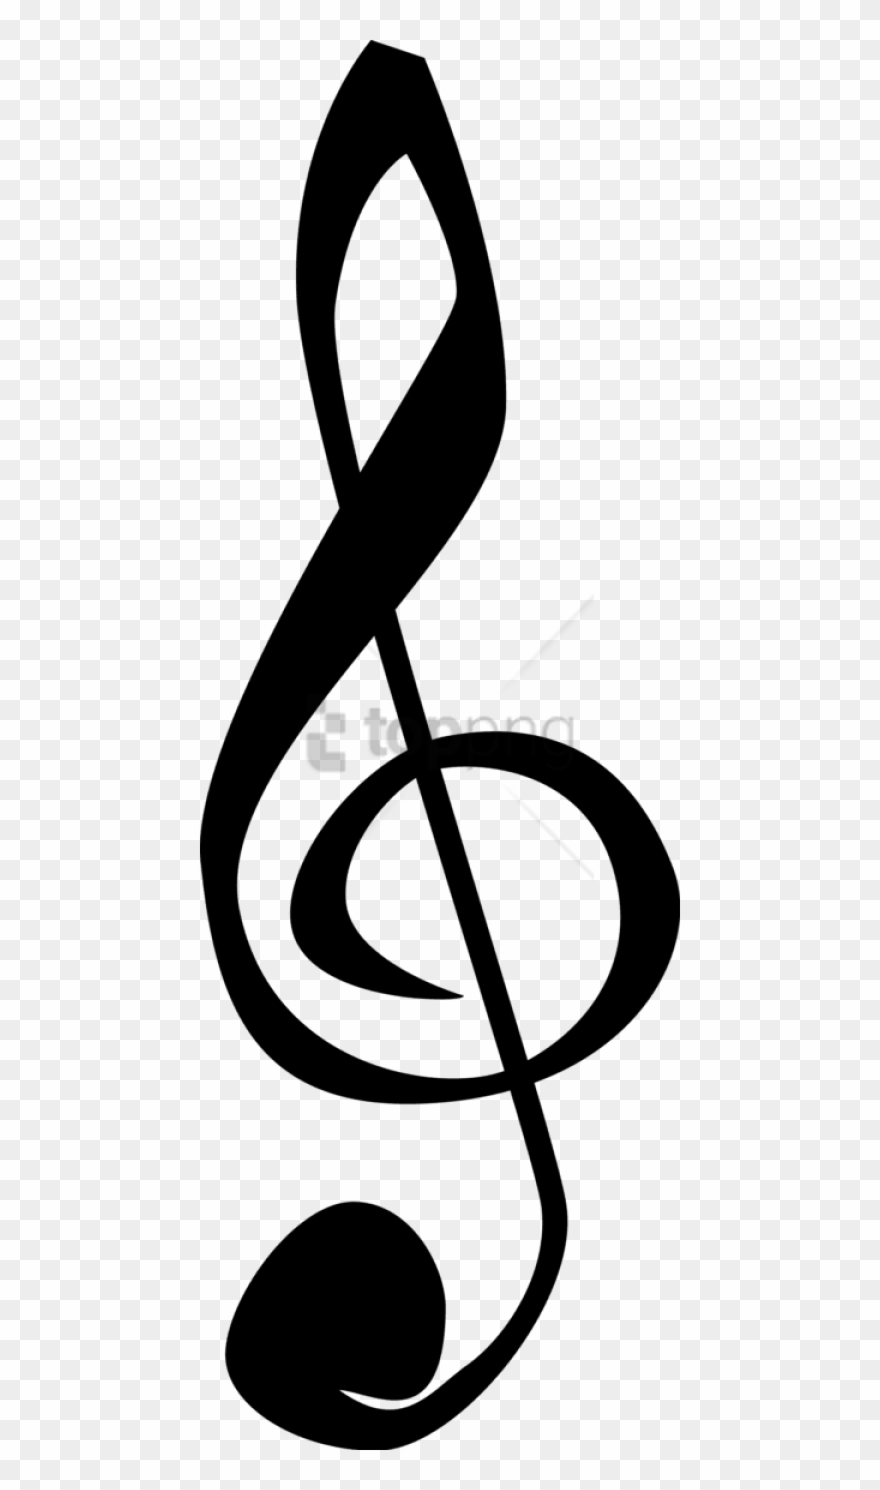 Music notes treble clef. Free png clipart image